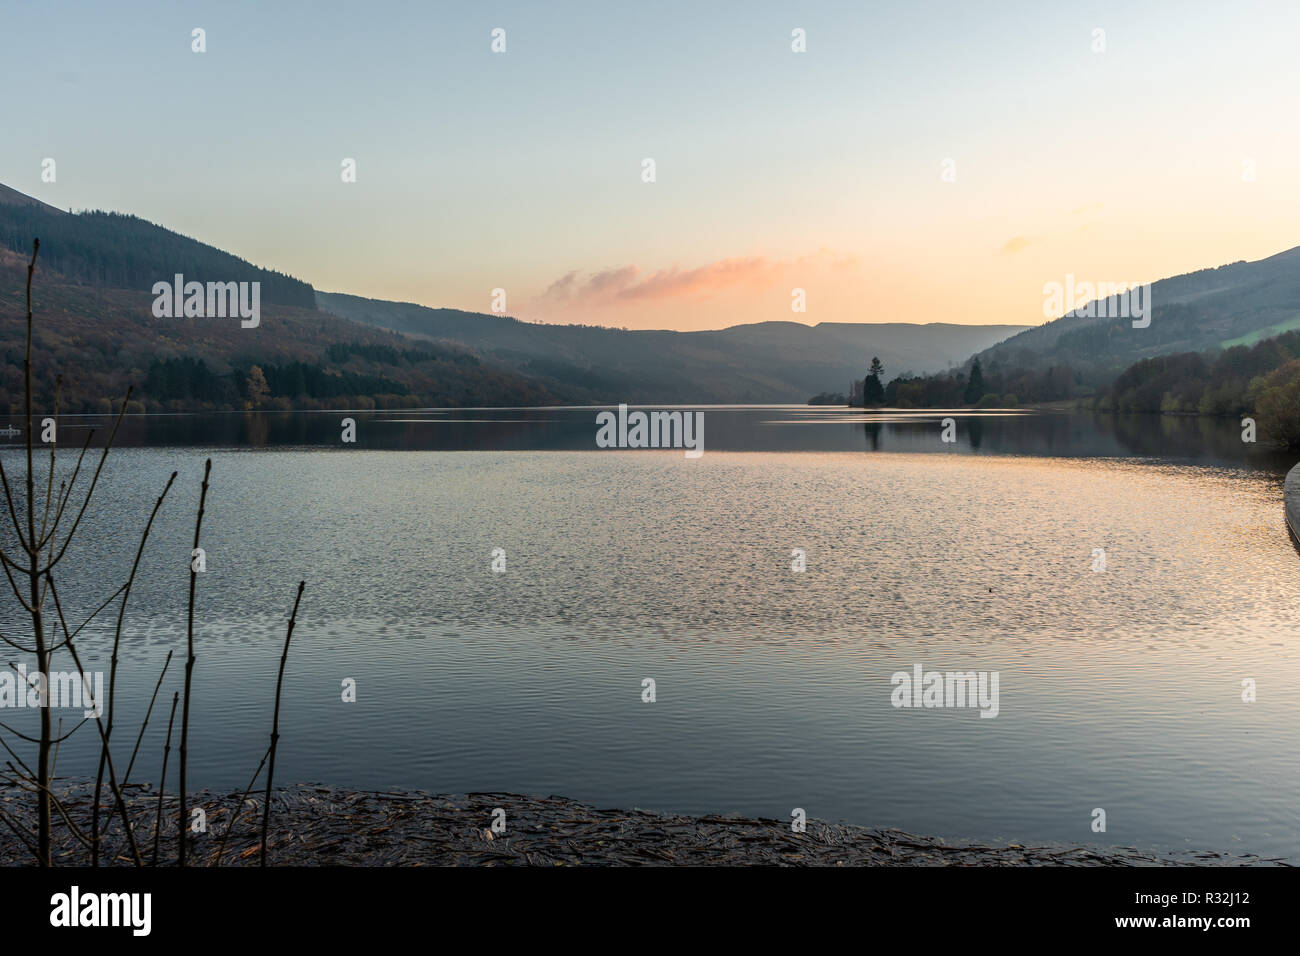 Scenic view across the Talybont Reservoir in the Brecon Beacons during sunset, Powys, Wales, UK - Stock Image